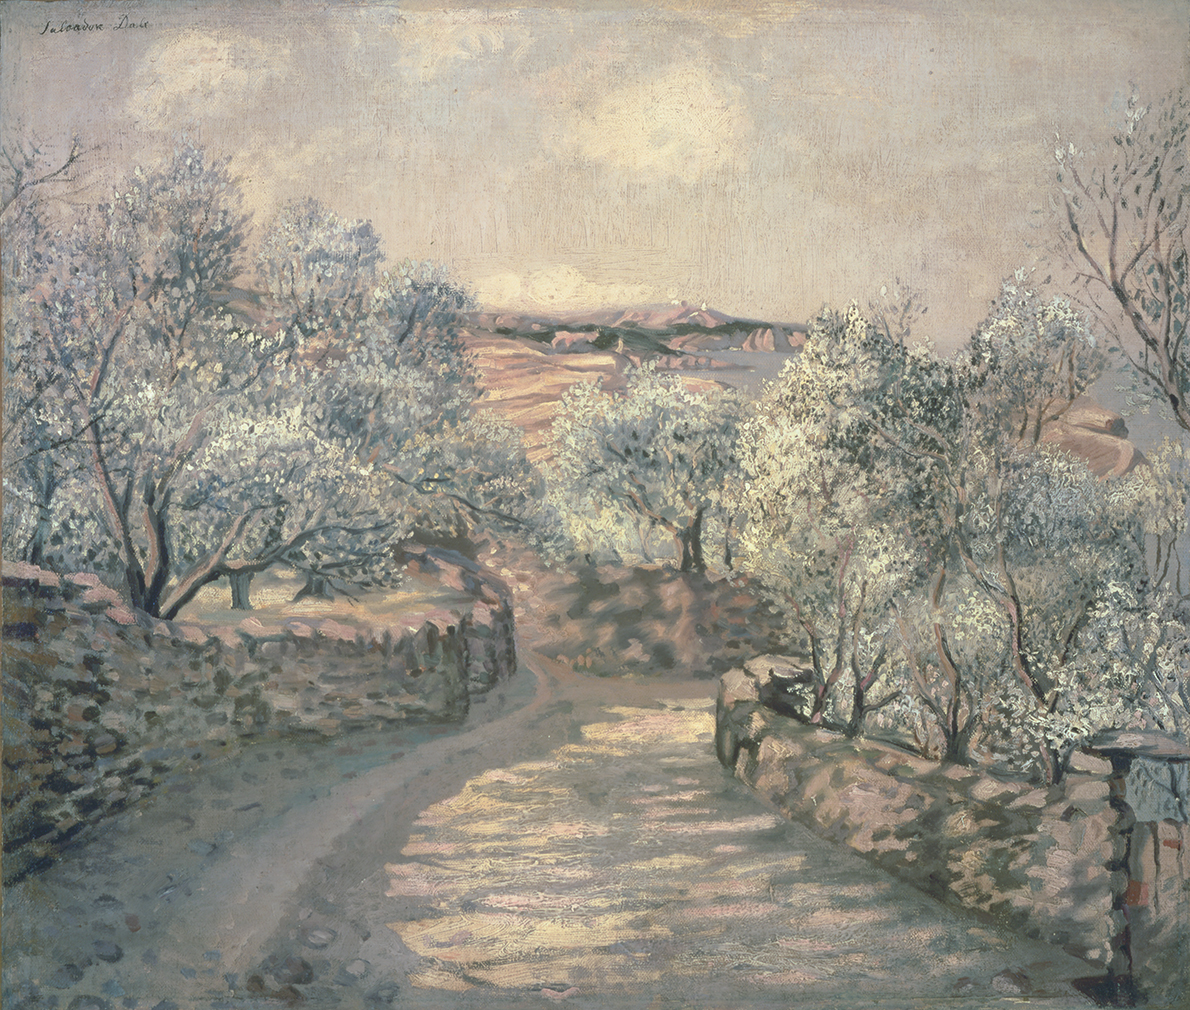 The Lane to Port Lligat 1922